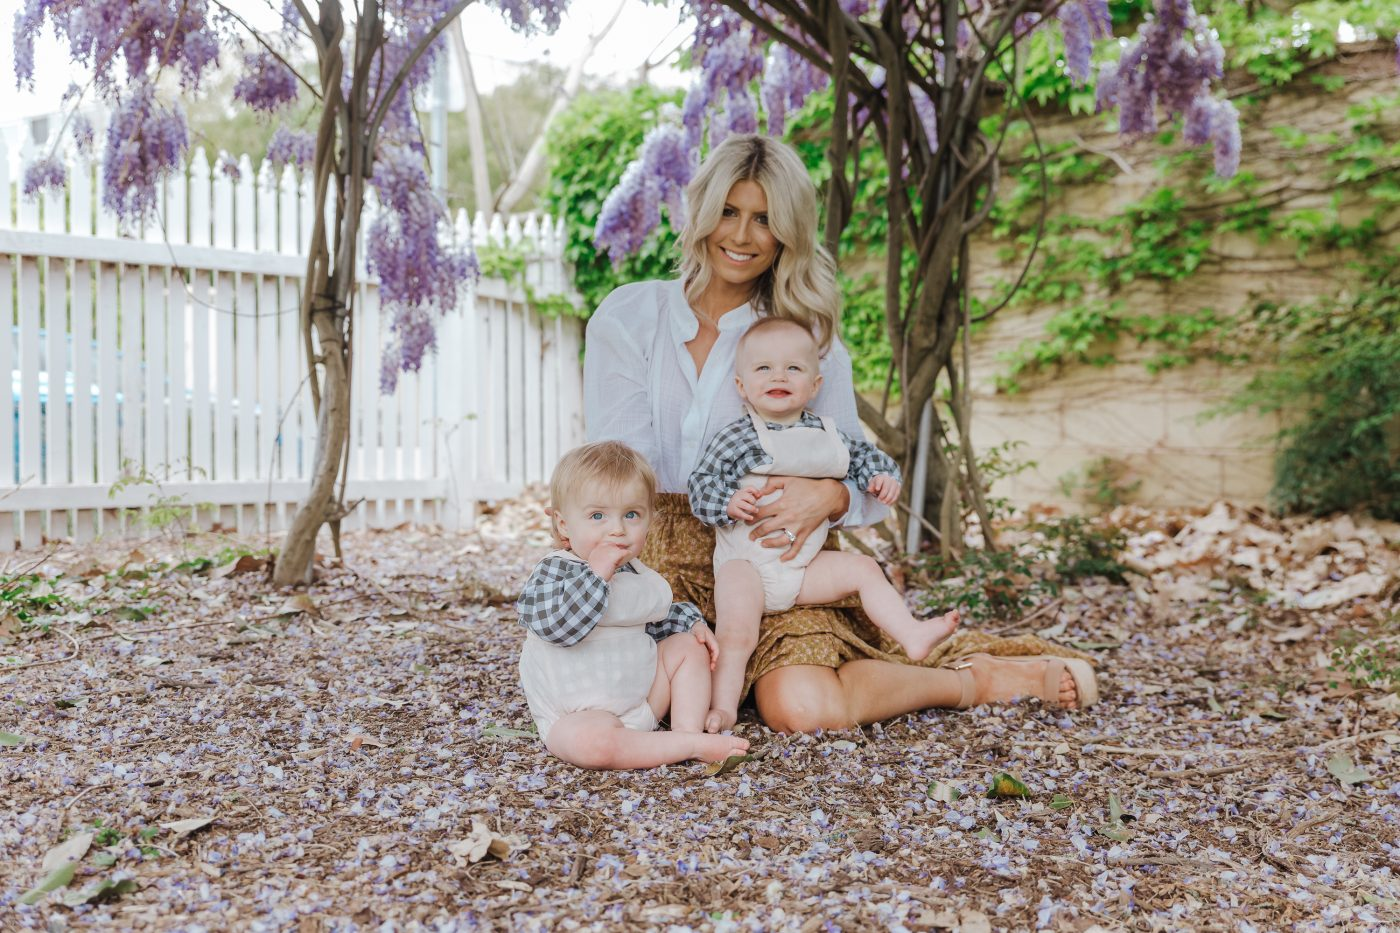 Photoshoot-Families-RolleyFamily